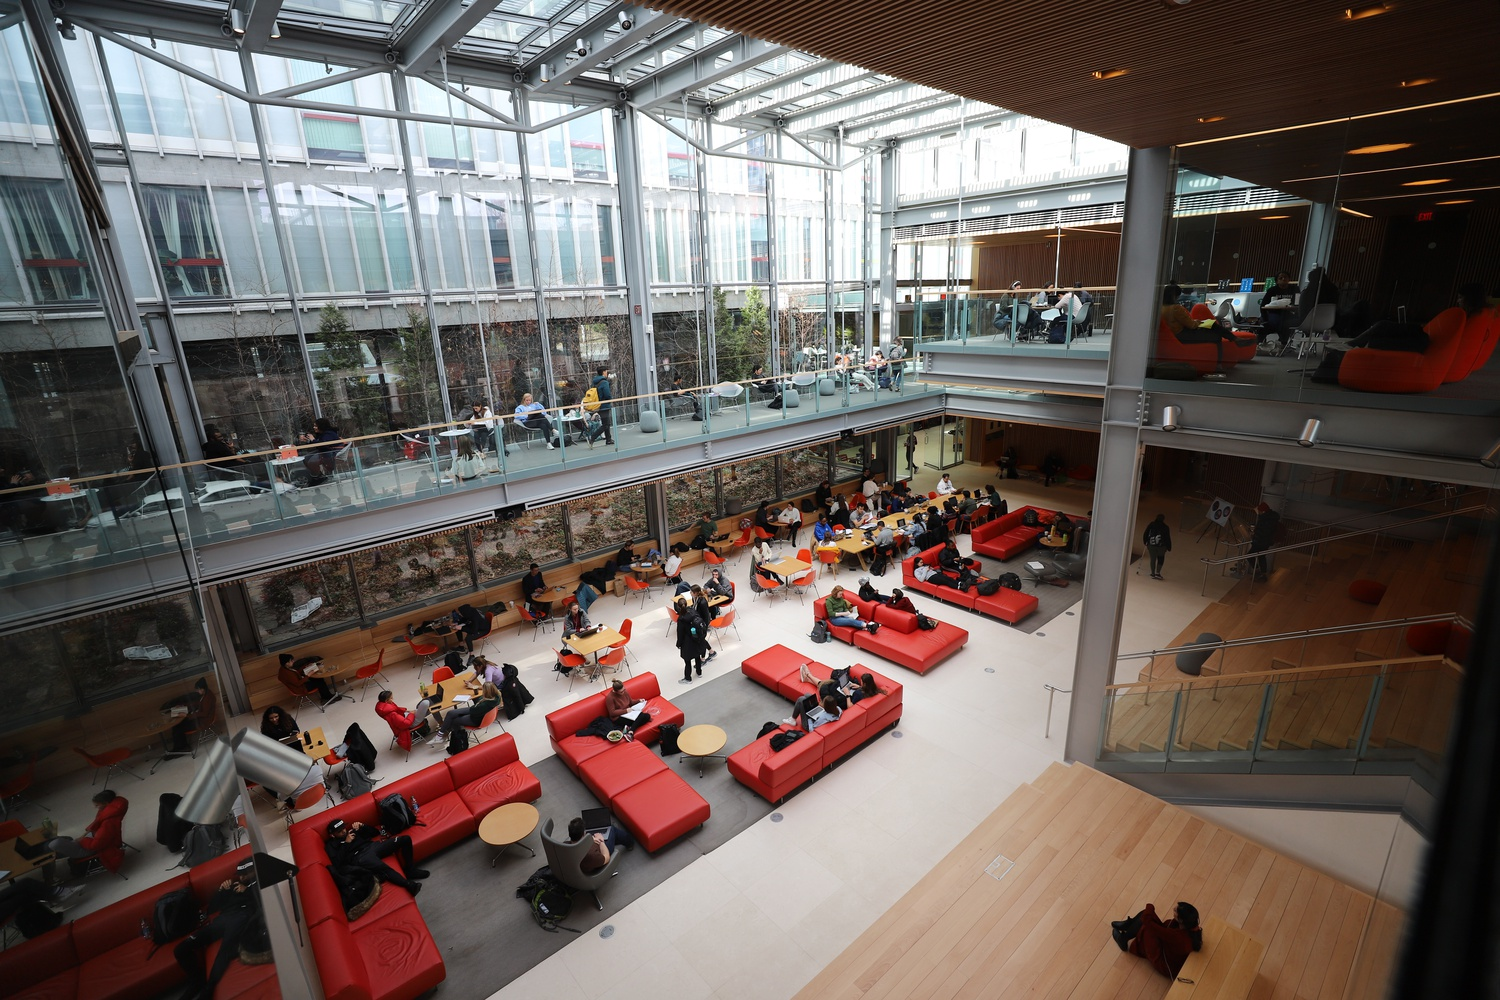 Prior to the pandemic, the Undergraduate Council typically met in the Smith Campus Center.